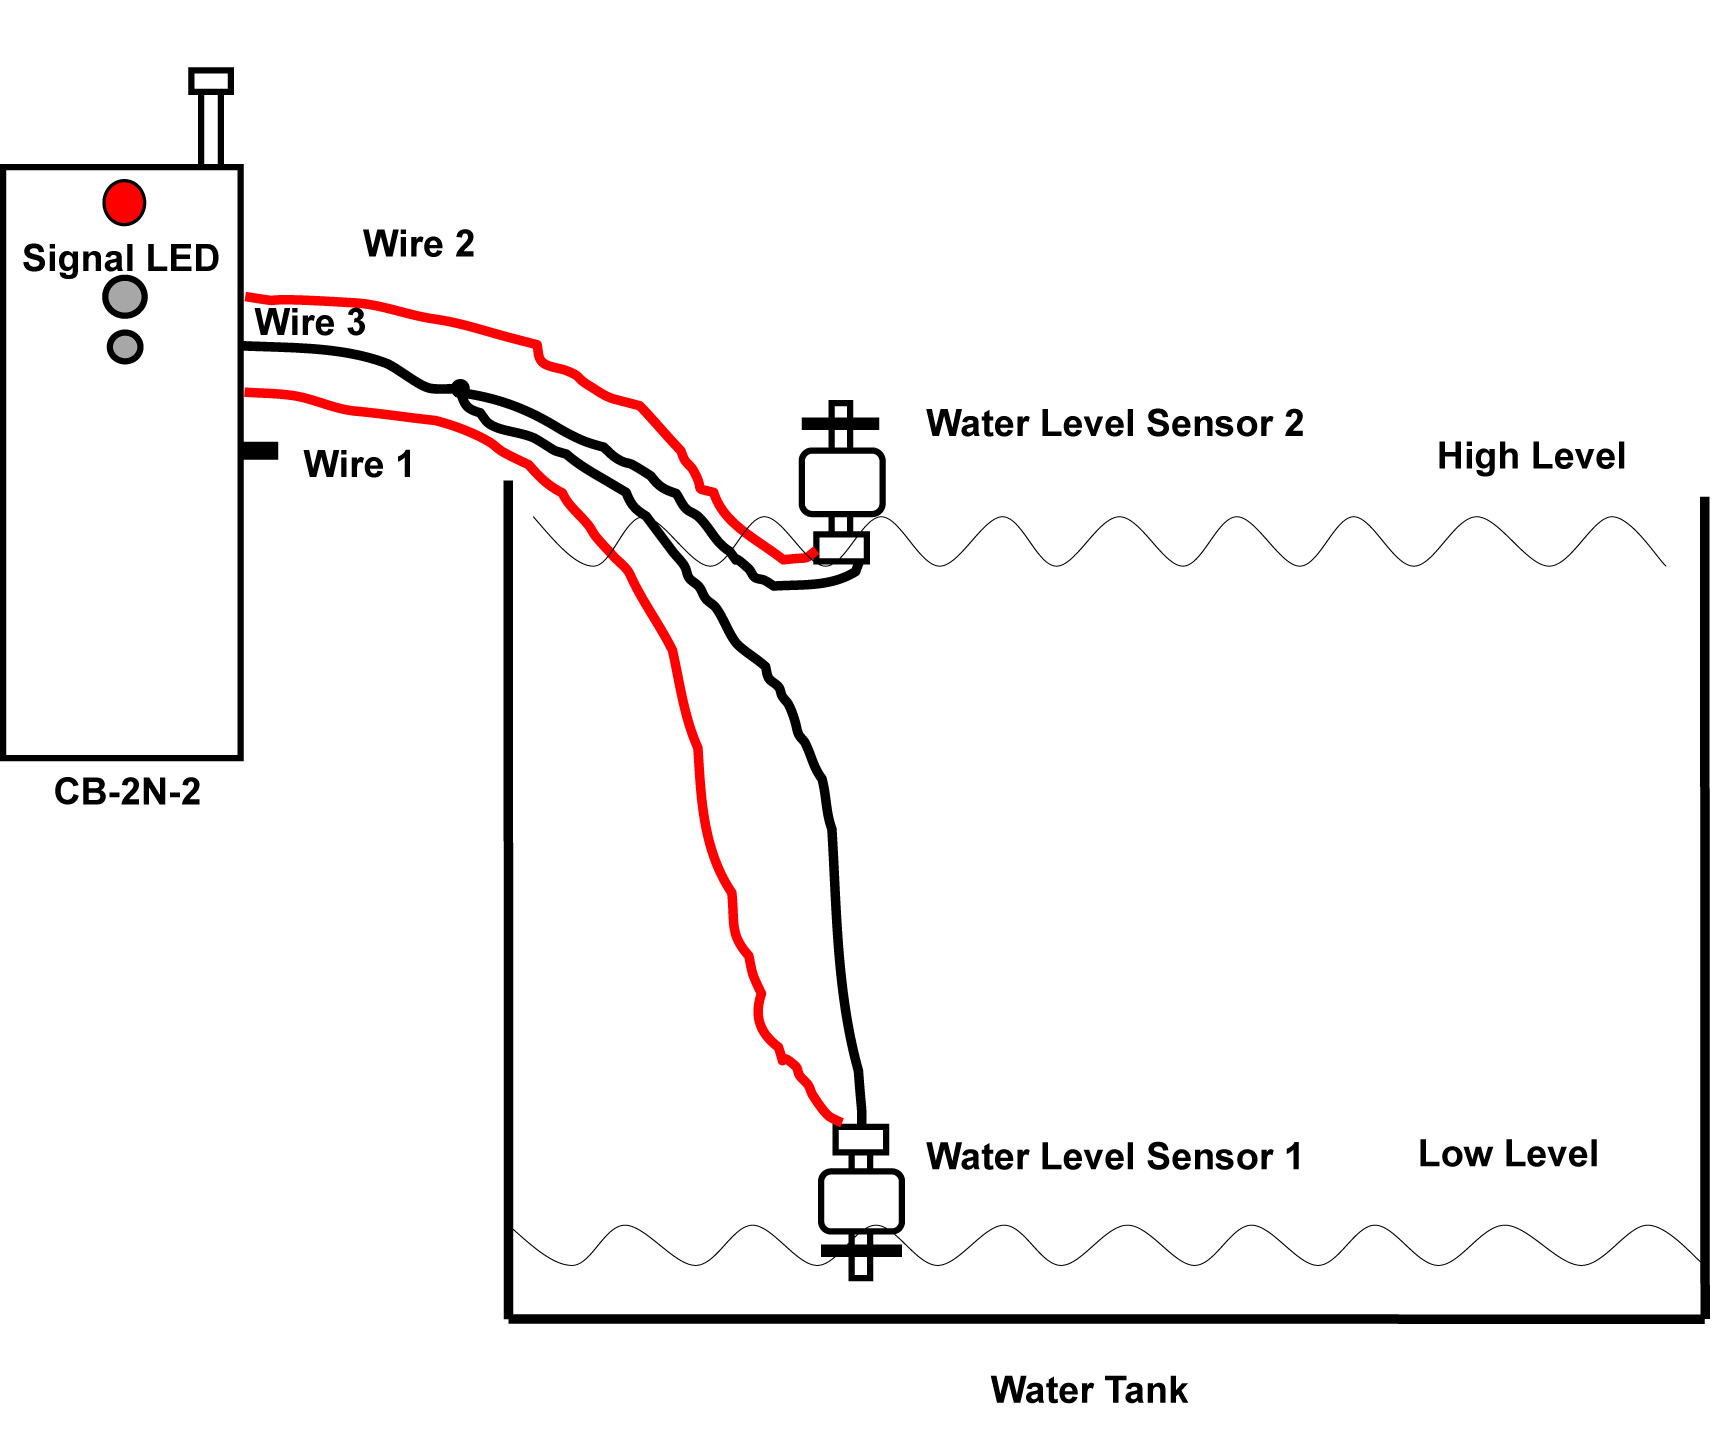 manual control and water level sensor control